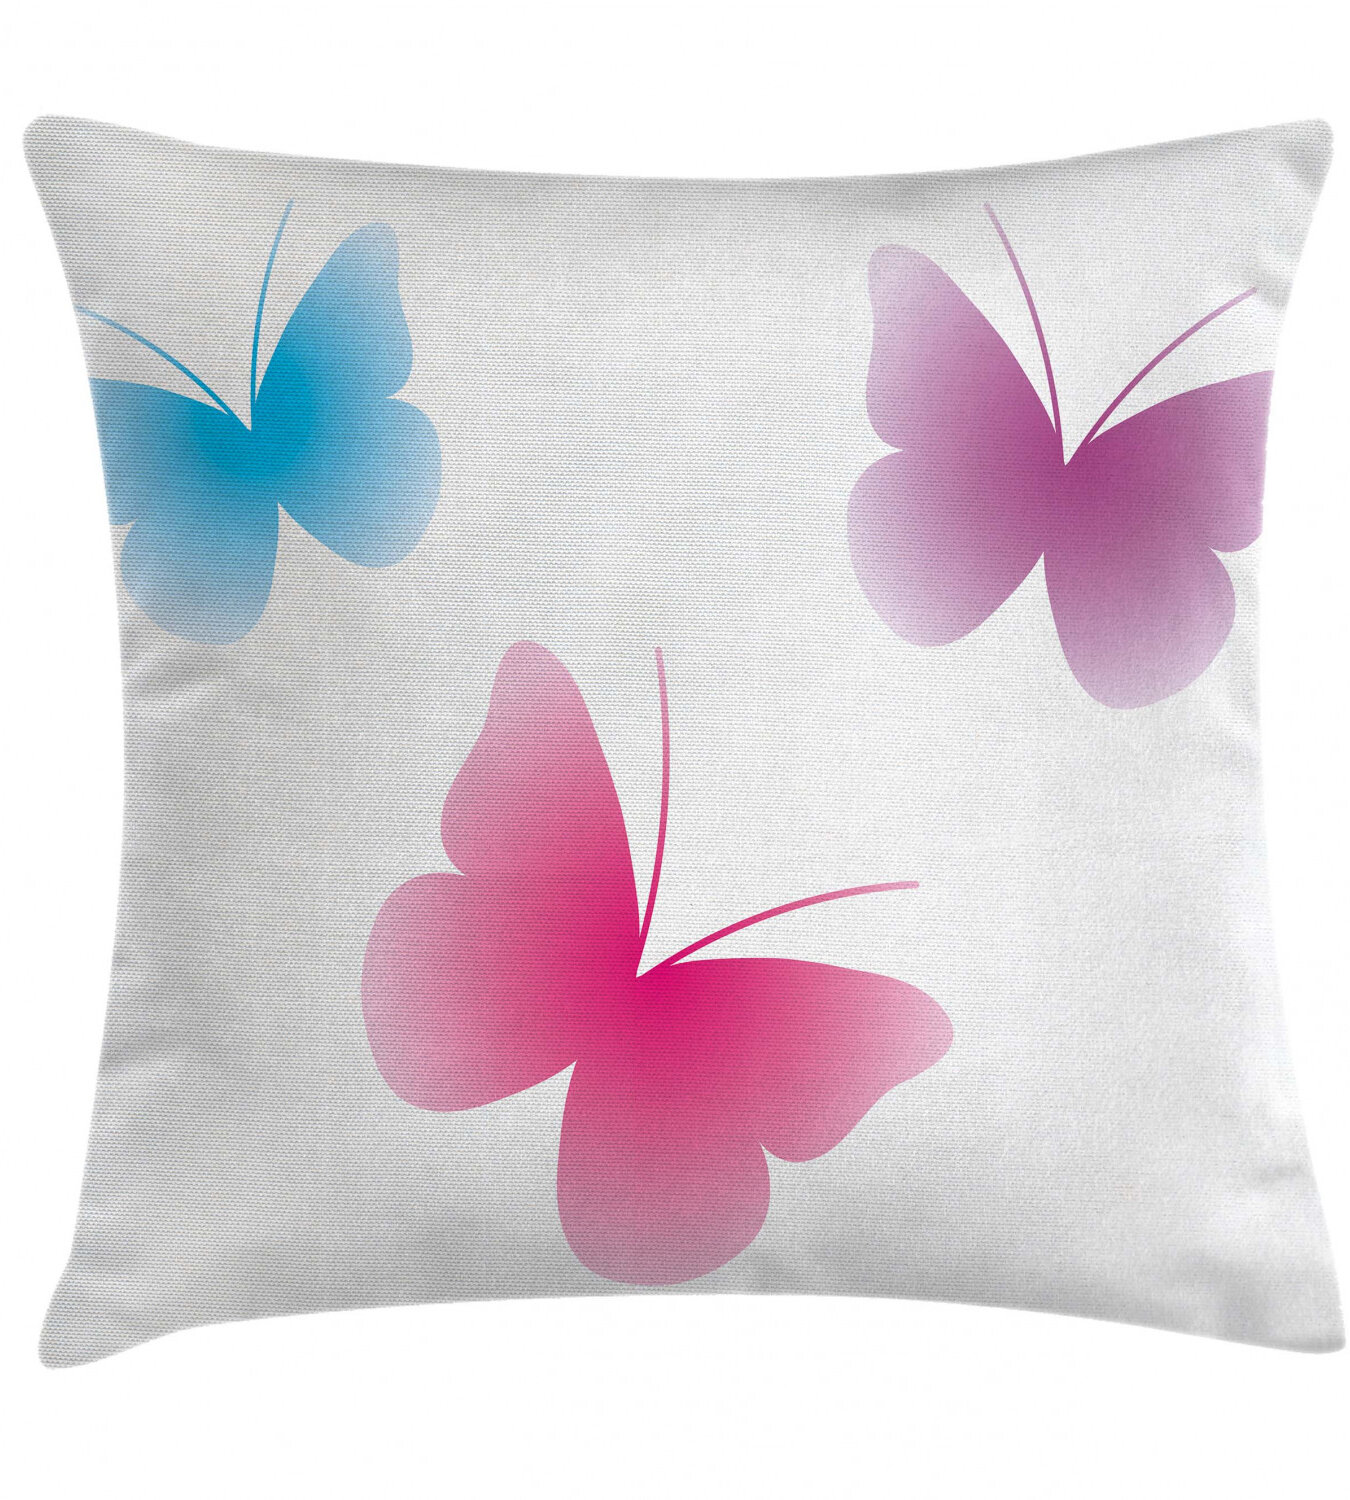 East Urban Home Butterfly Different Wings Life Indoor Outdoor 28 Throw Pillow Cover Wayfair